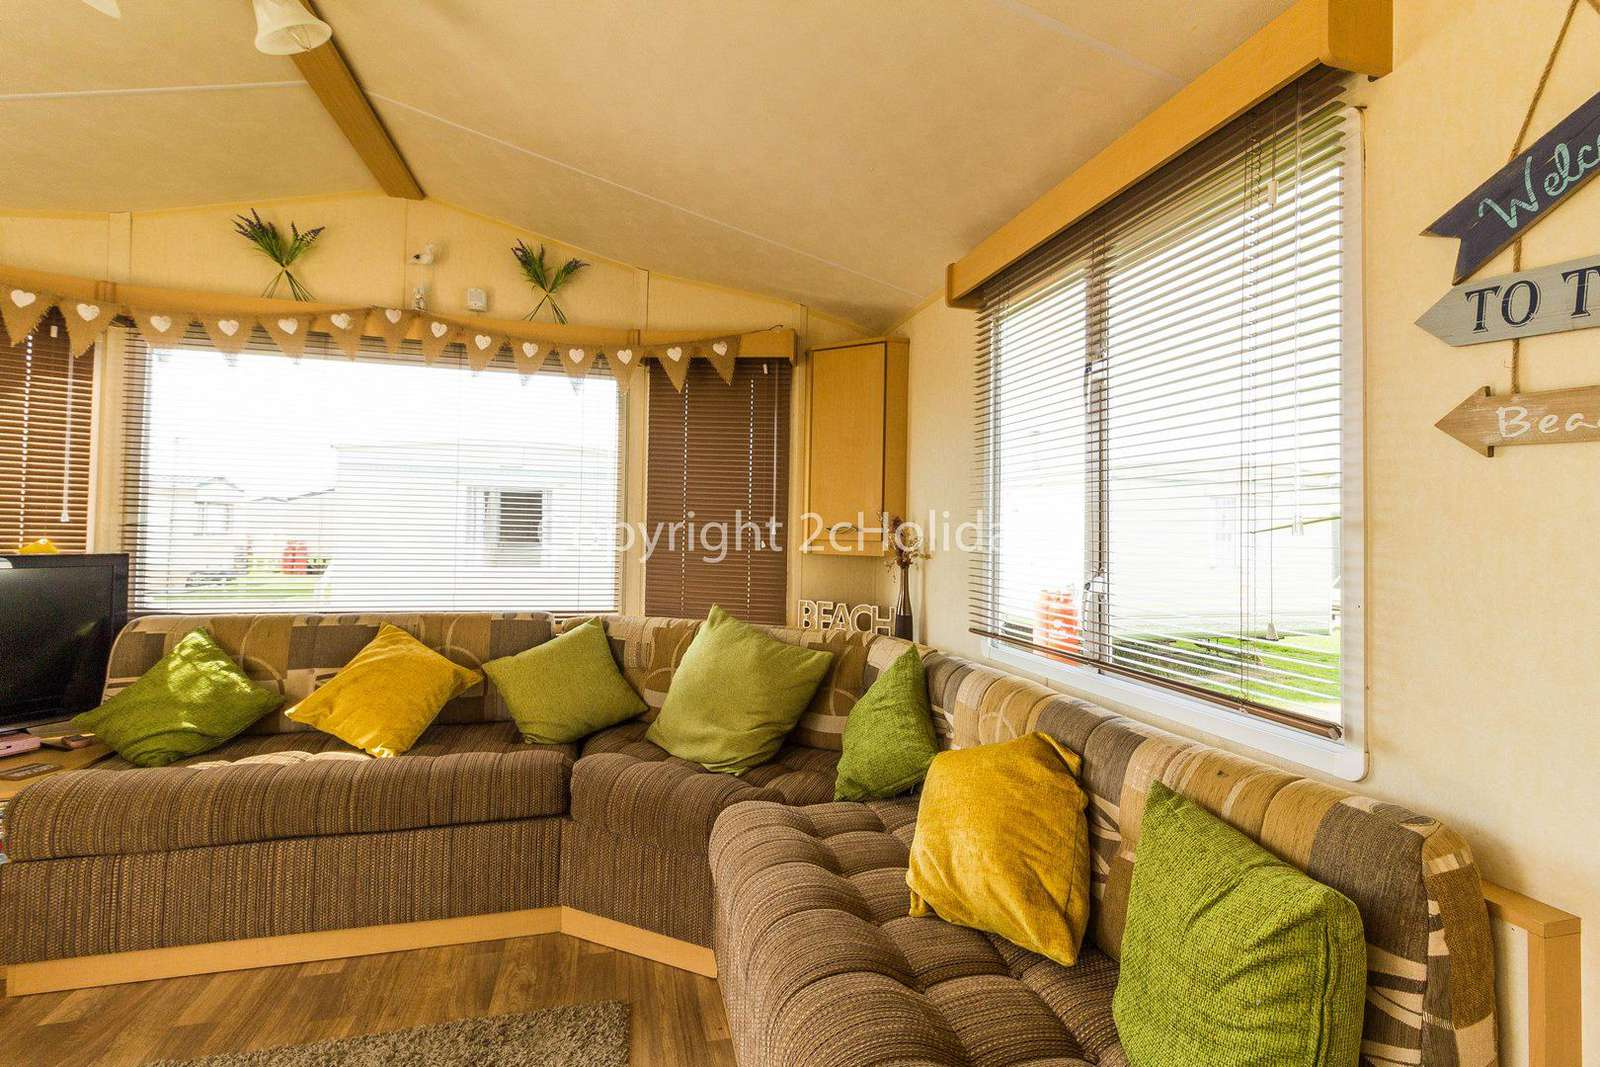 Come and stay in this private accommodation Heacham Beach Holiday Park.